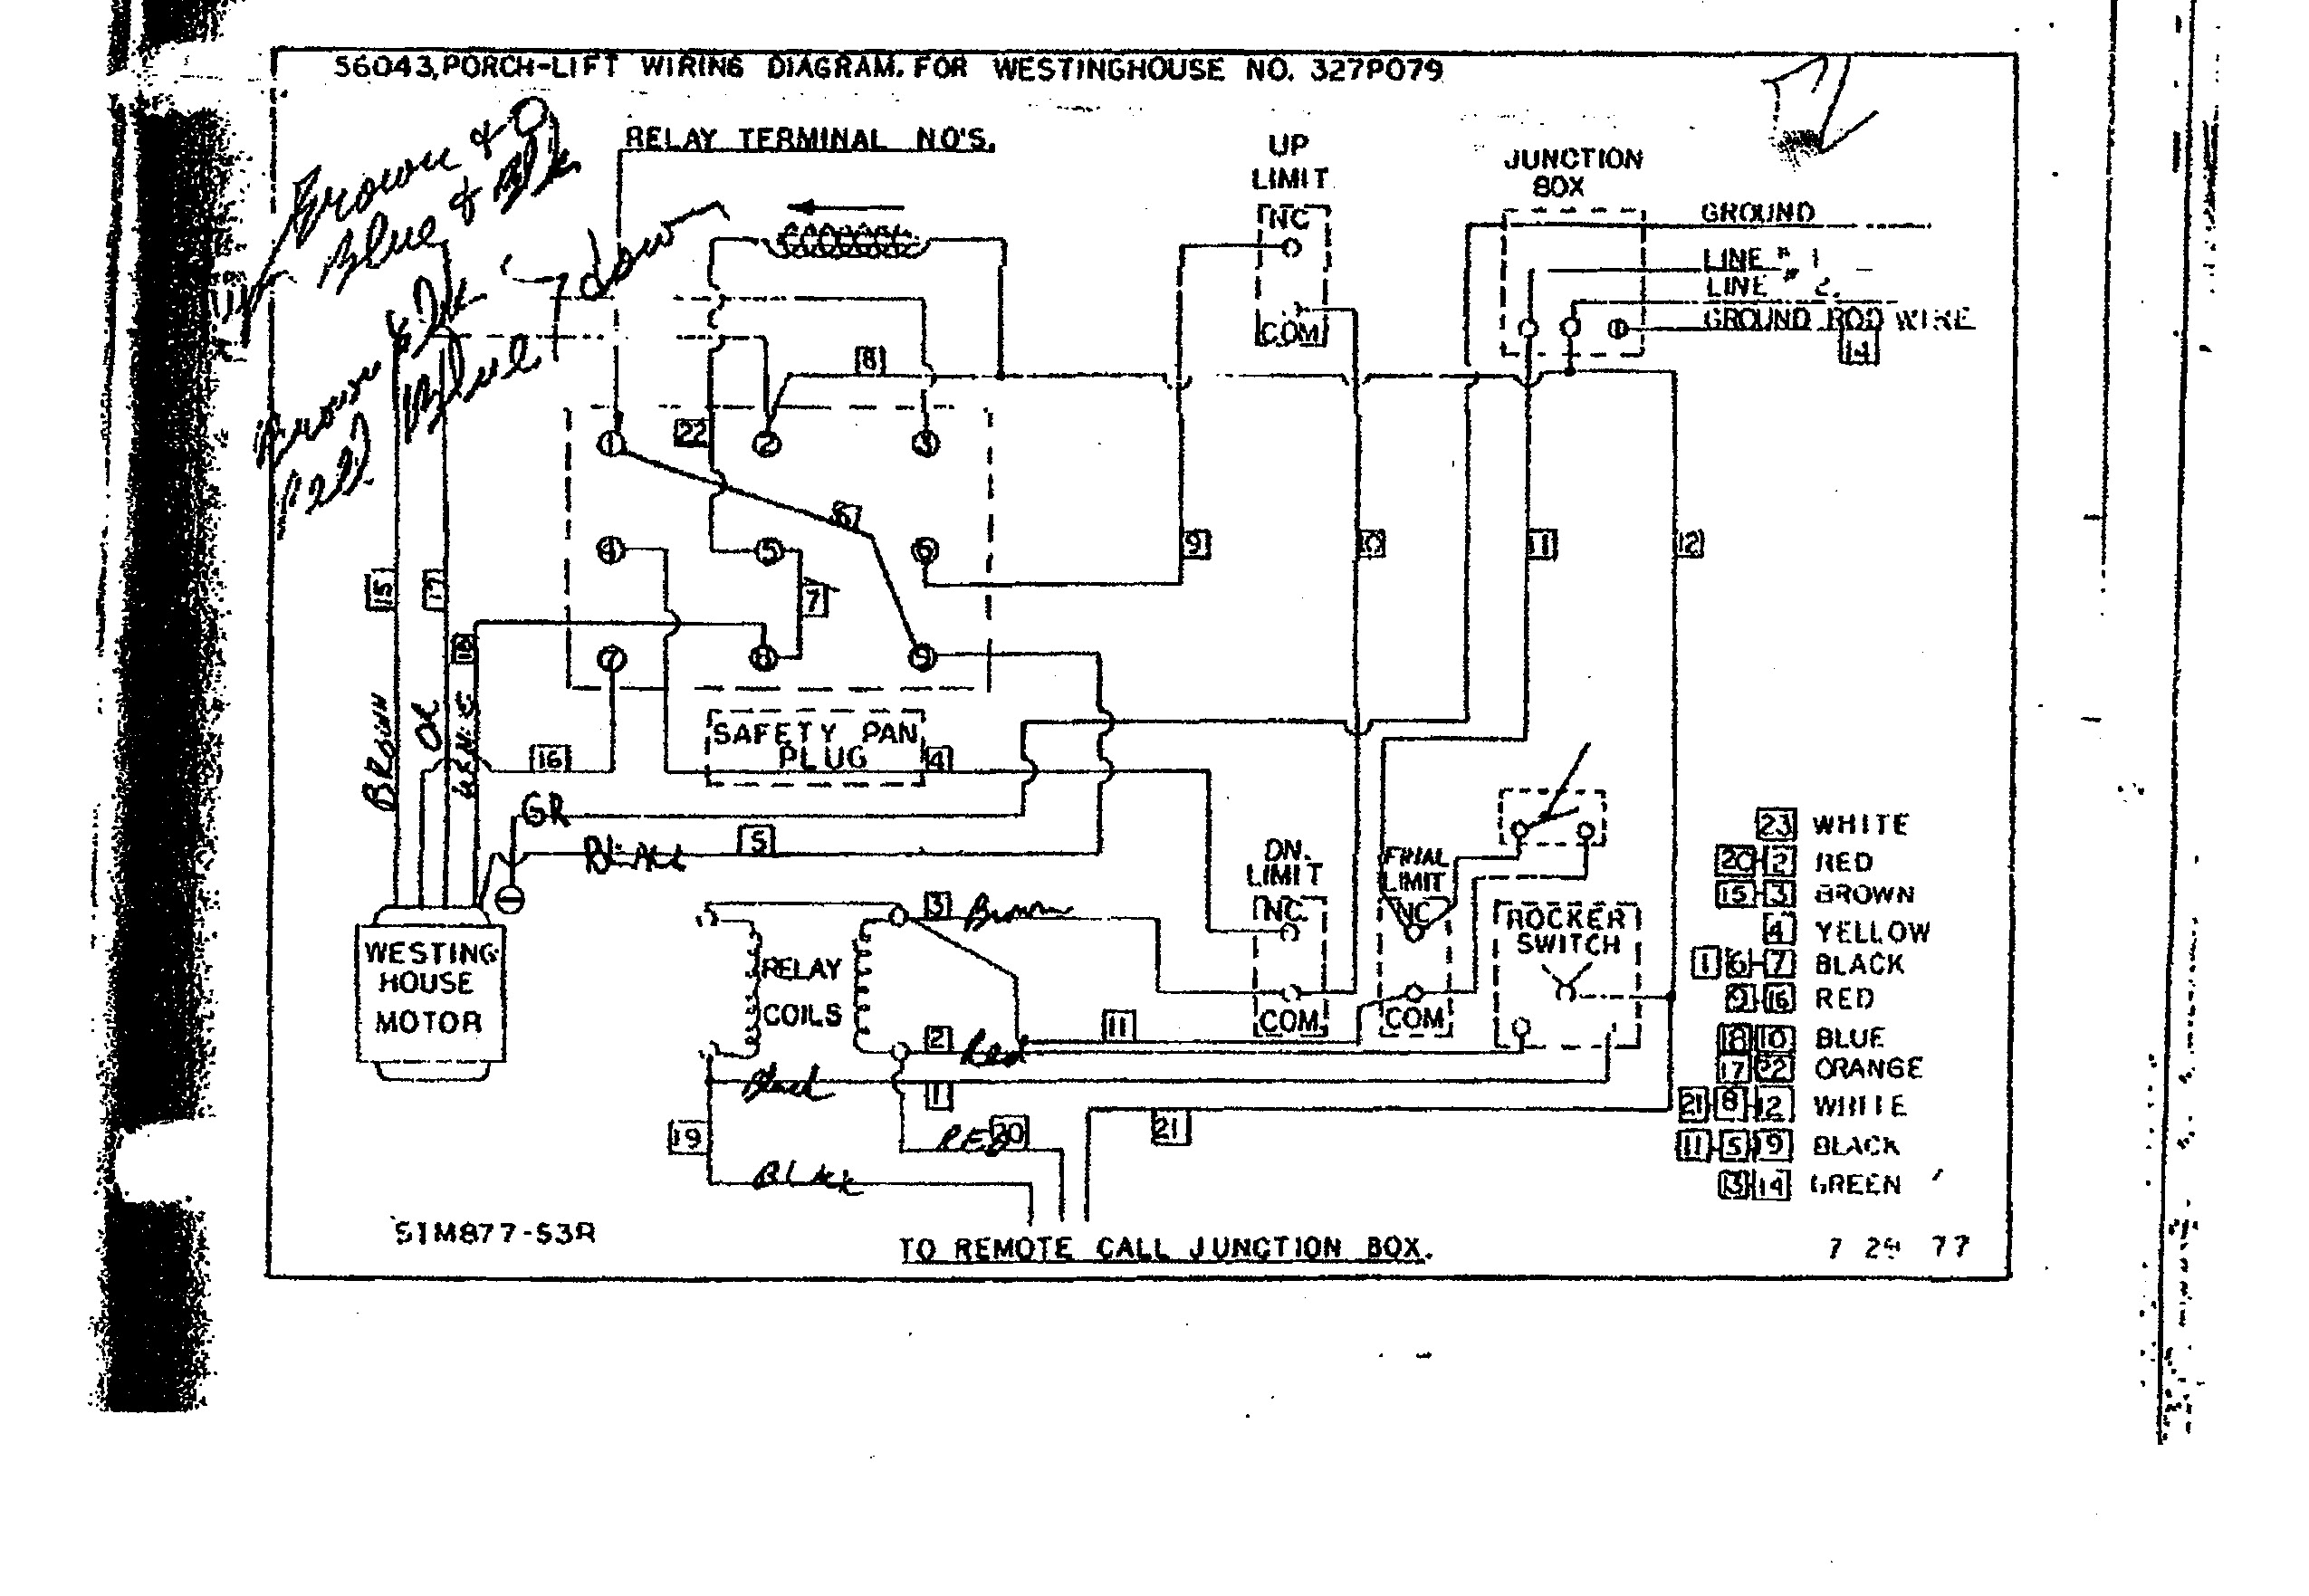 Motor besides Wiring Diagram For Reversing Single Phase Motor And With Capacitor Forward Reverse further 6 Lead Single Phase Motor Wiring Diagram together with Reversing Motor Wiring Diagram also Motor Reversing Switch Wiring Diagram. on single phase reversible motor wiring diagram